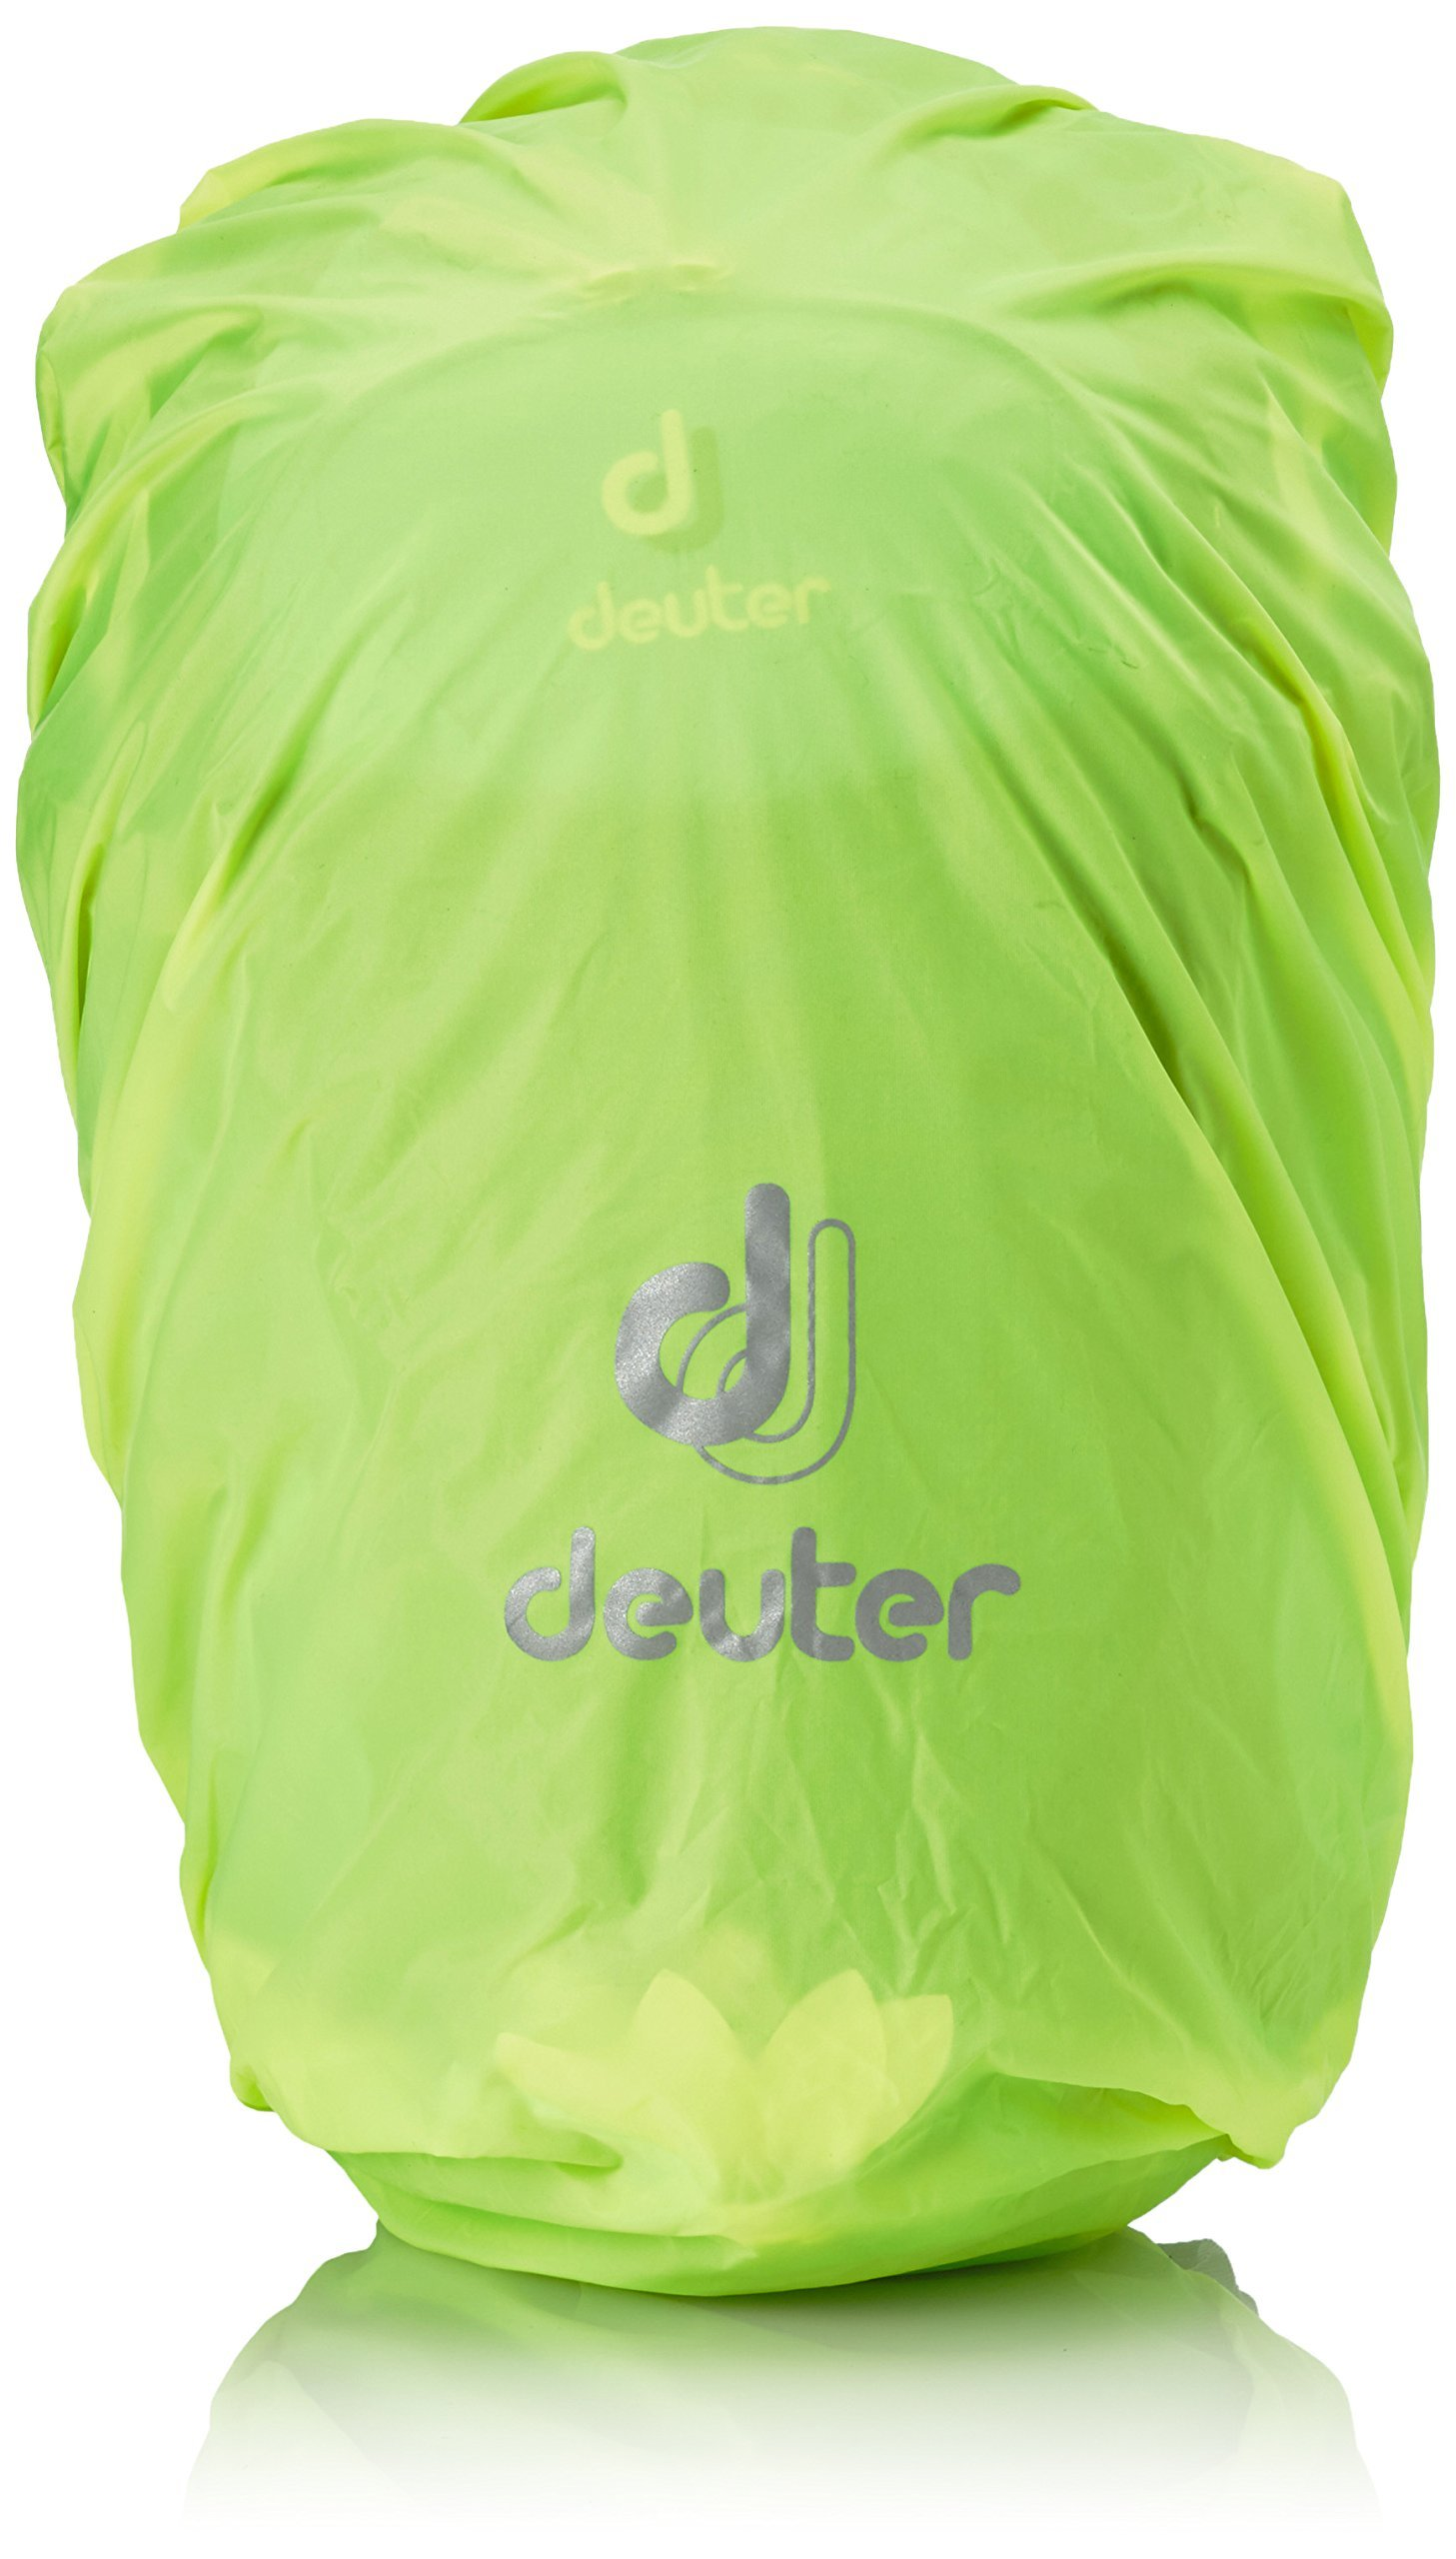 Deuter Compact EXP 10 SL w/ 3L Res. Hydration Pack (Turquoise/Midnight) by Deuter